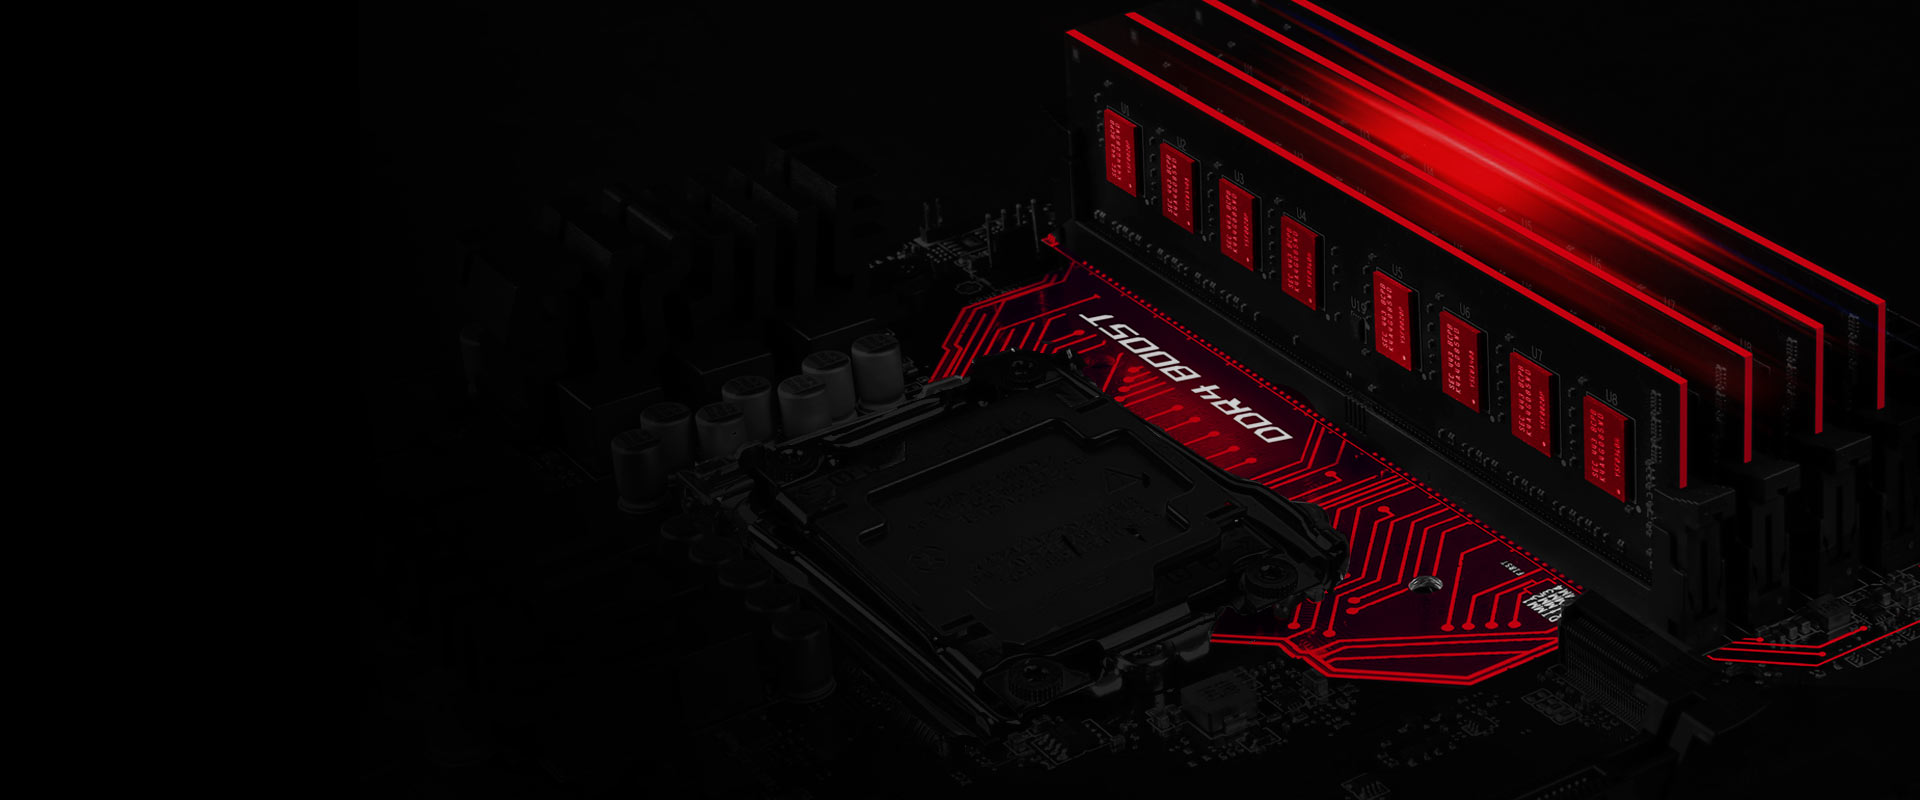 https://asset.msi.com/global/picture/image/feature/mb/RWD_Img/X99/Carbon_godlikeDDR4.jpg